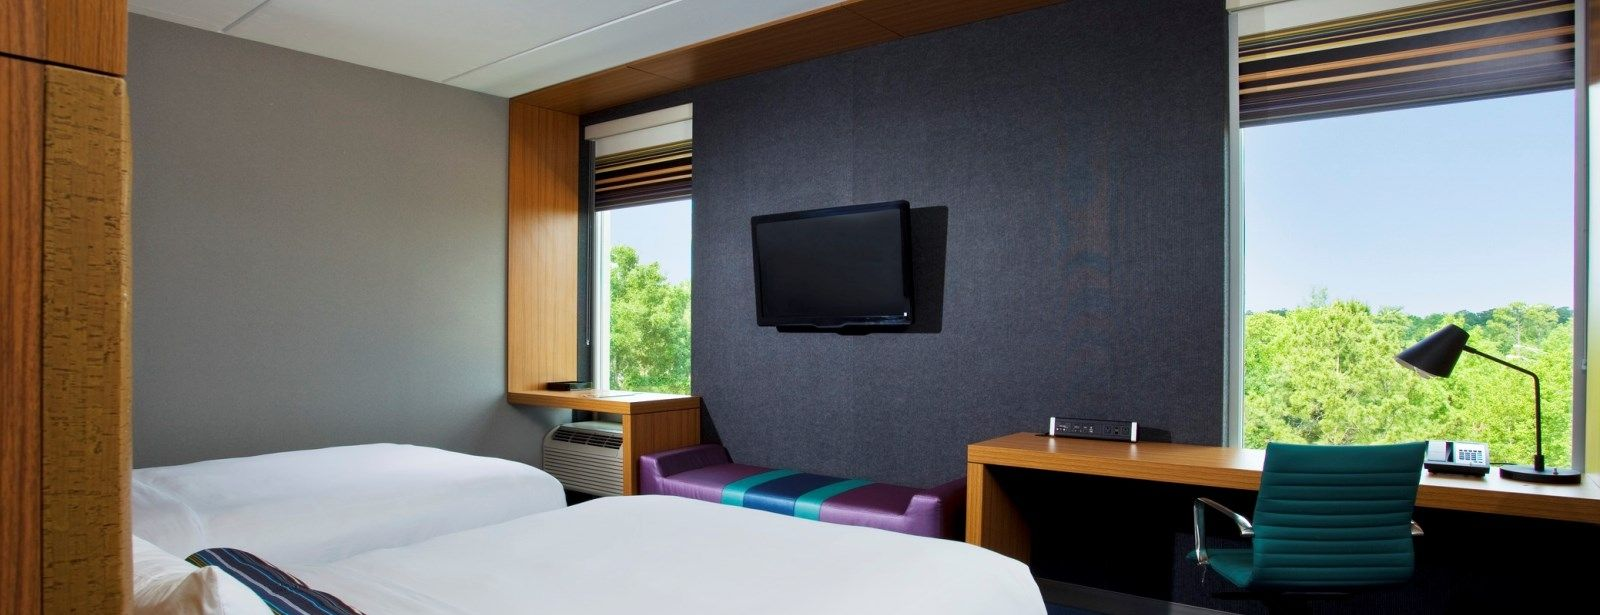 Jacksonville Accommodations - Aloft Queen Room